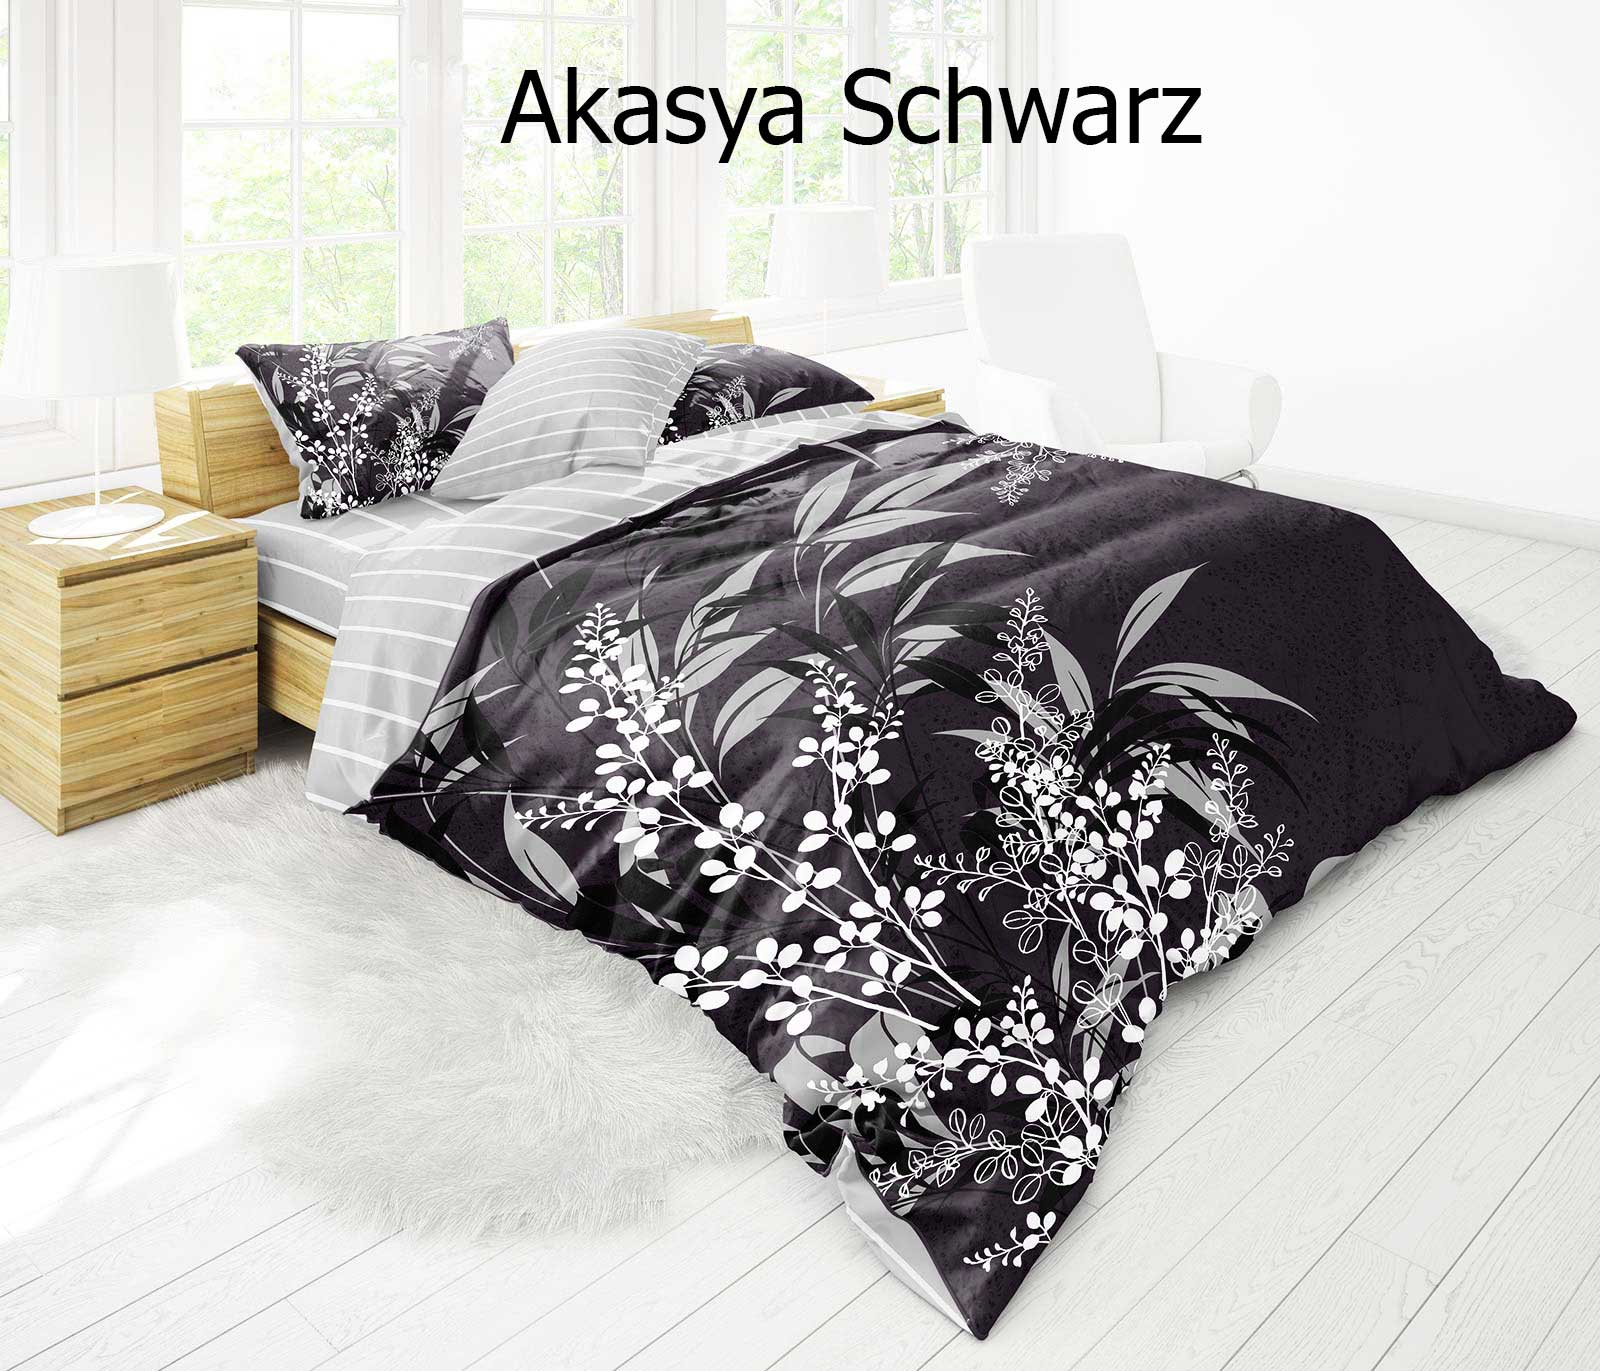 3d bettw sche bettgarnitur 200x220 200x200 220x240 cm 100 baumwolle akasya ebay. Black Bedroom Furniture Sets. Home Design Ideas